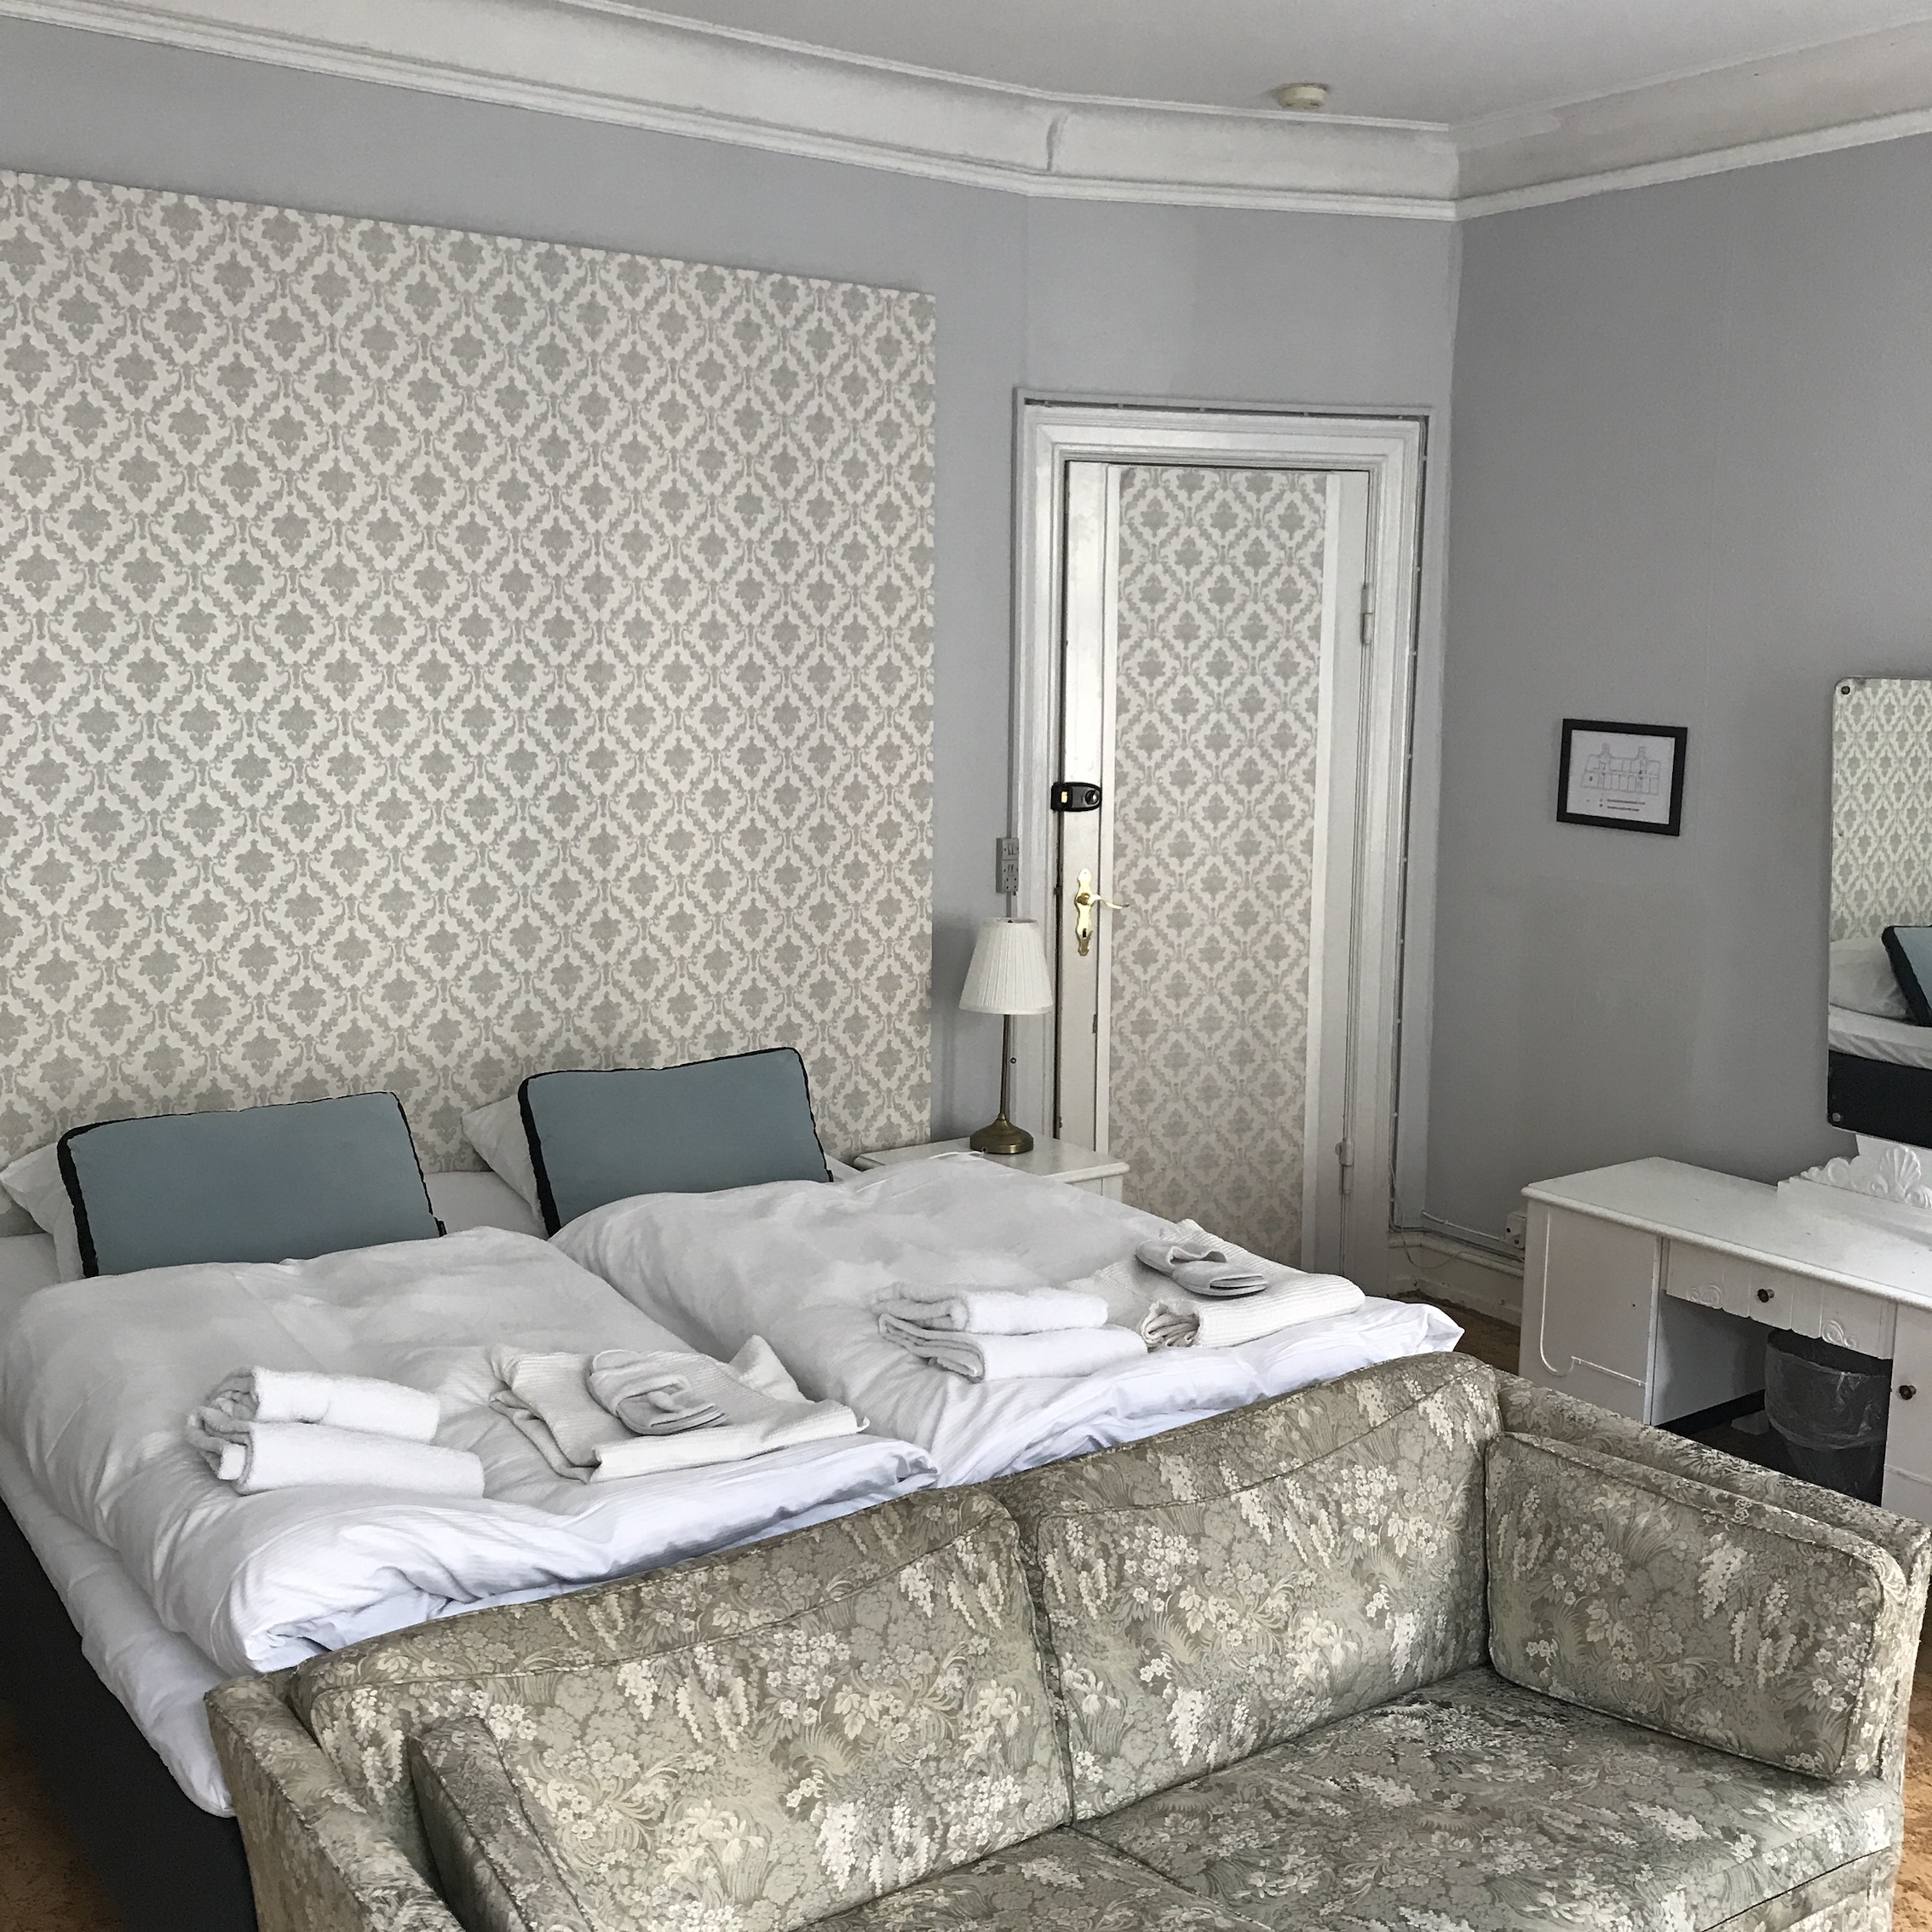 hotel-room-pale-grey-walls-white-bed-copenhagen